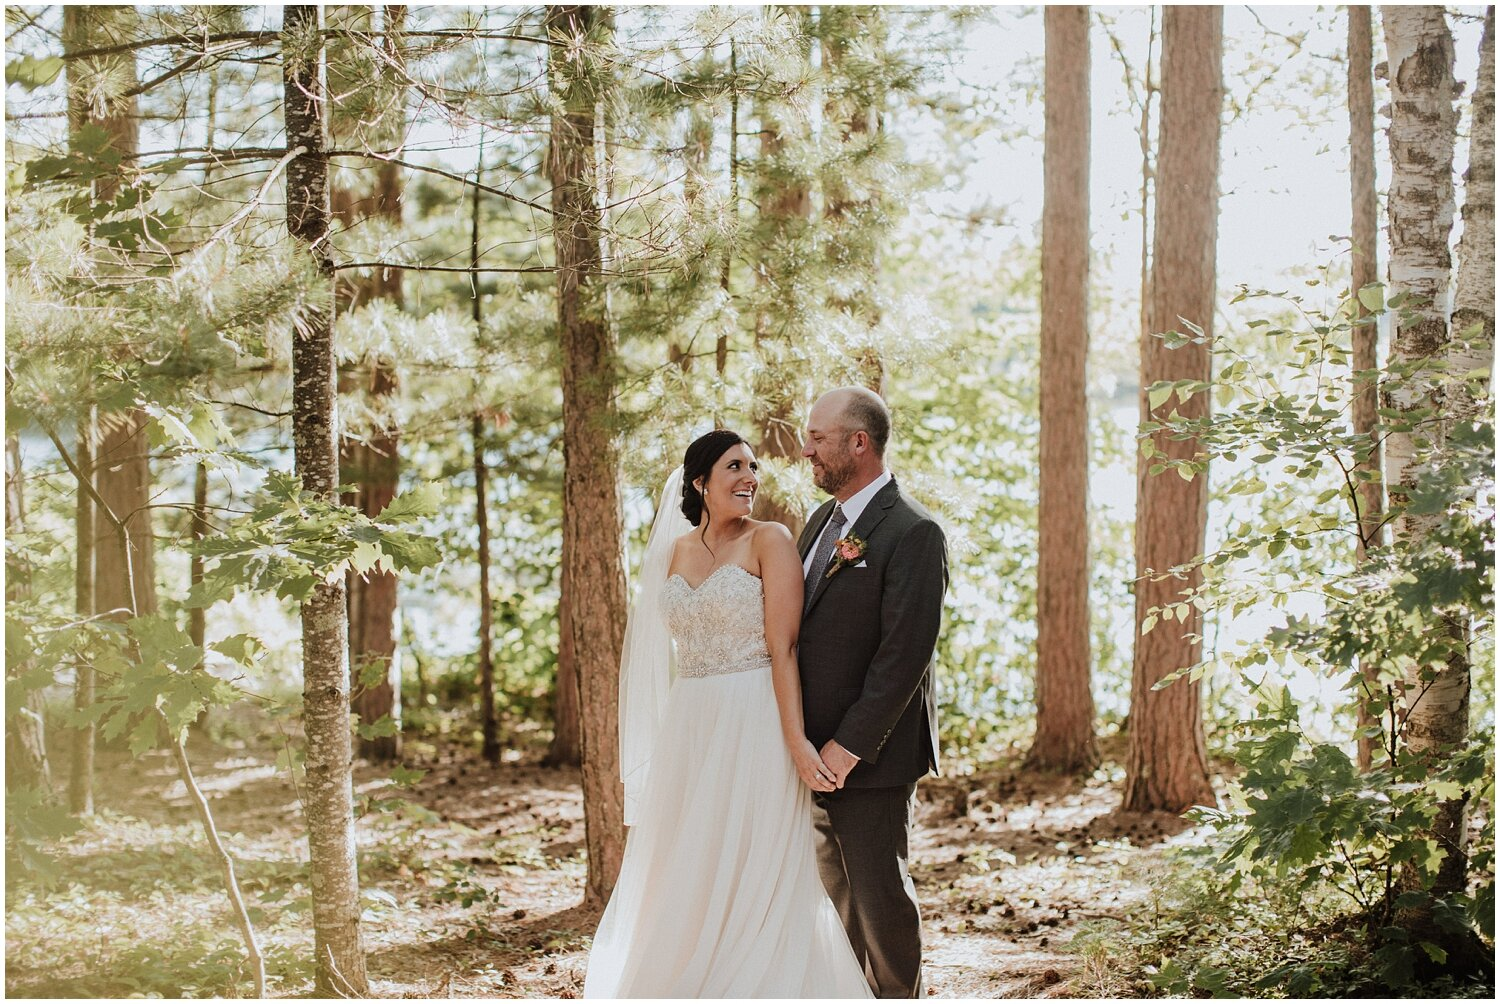 Kirsten + Jim - Laid back & In Love Up North